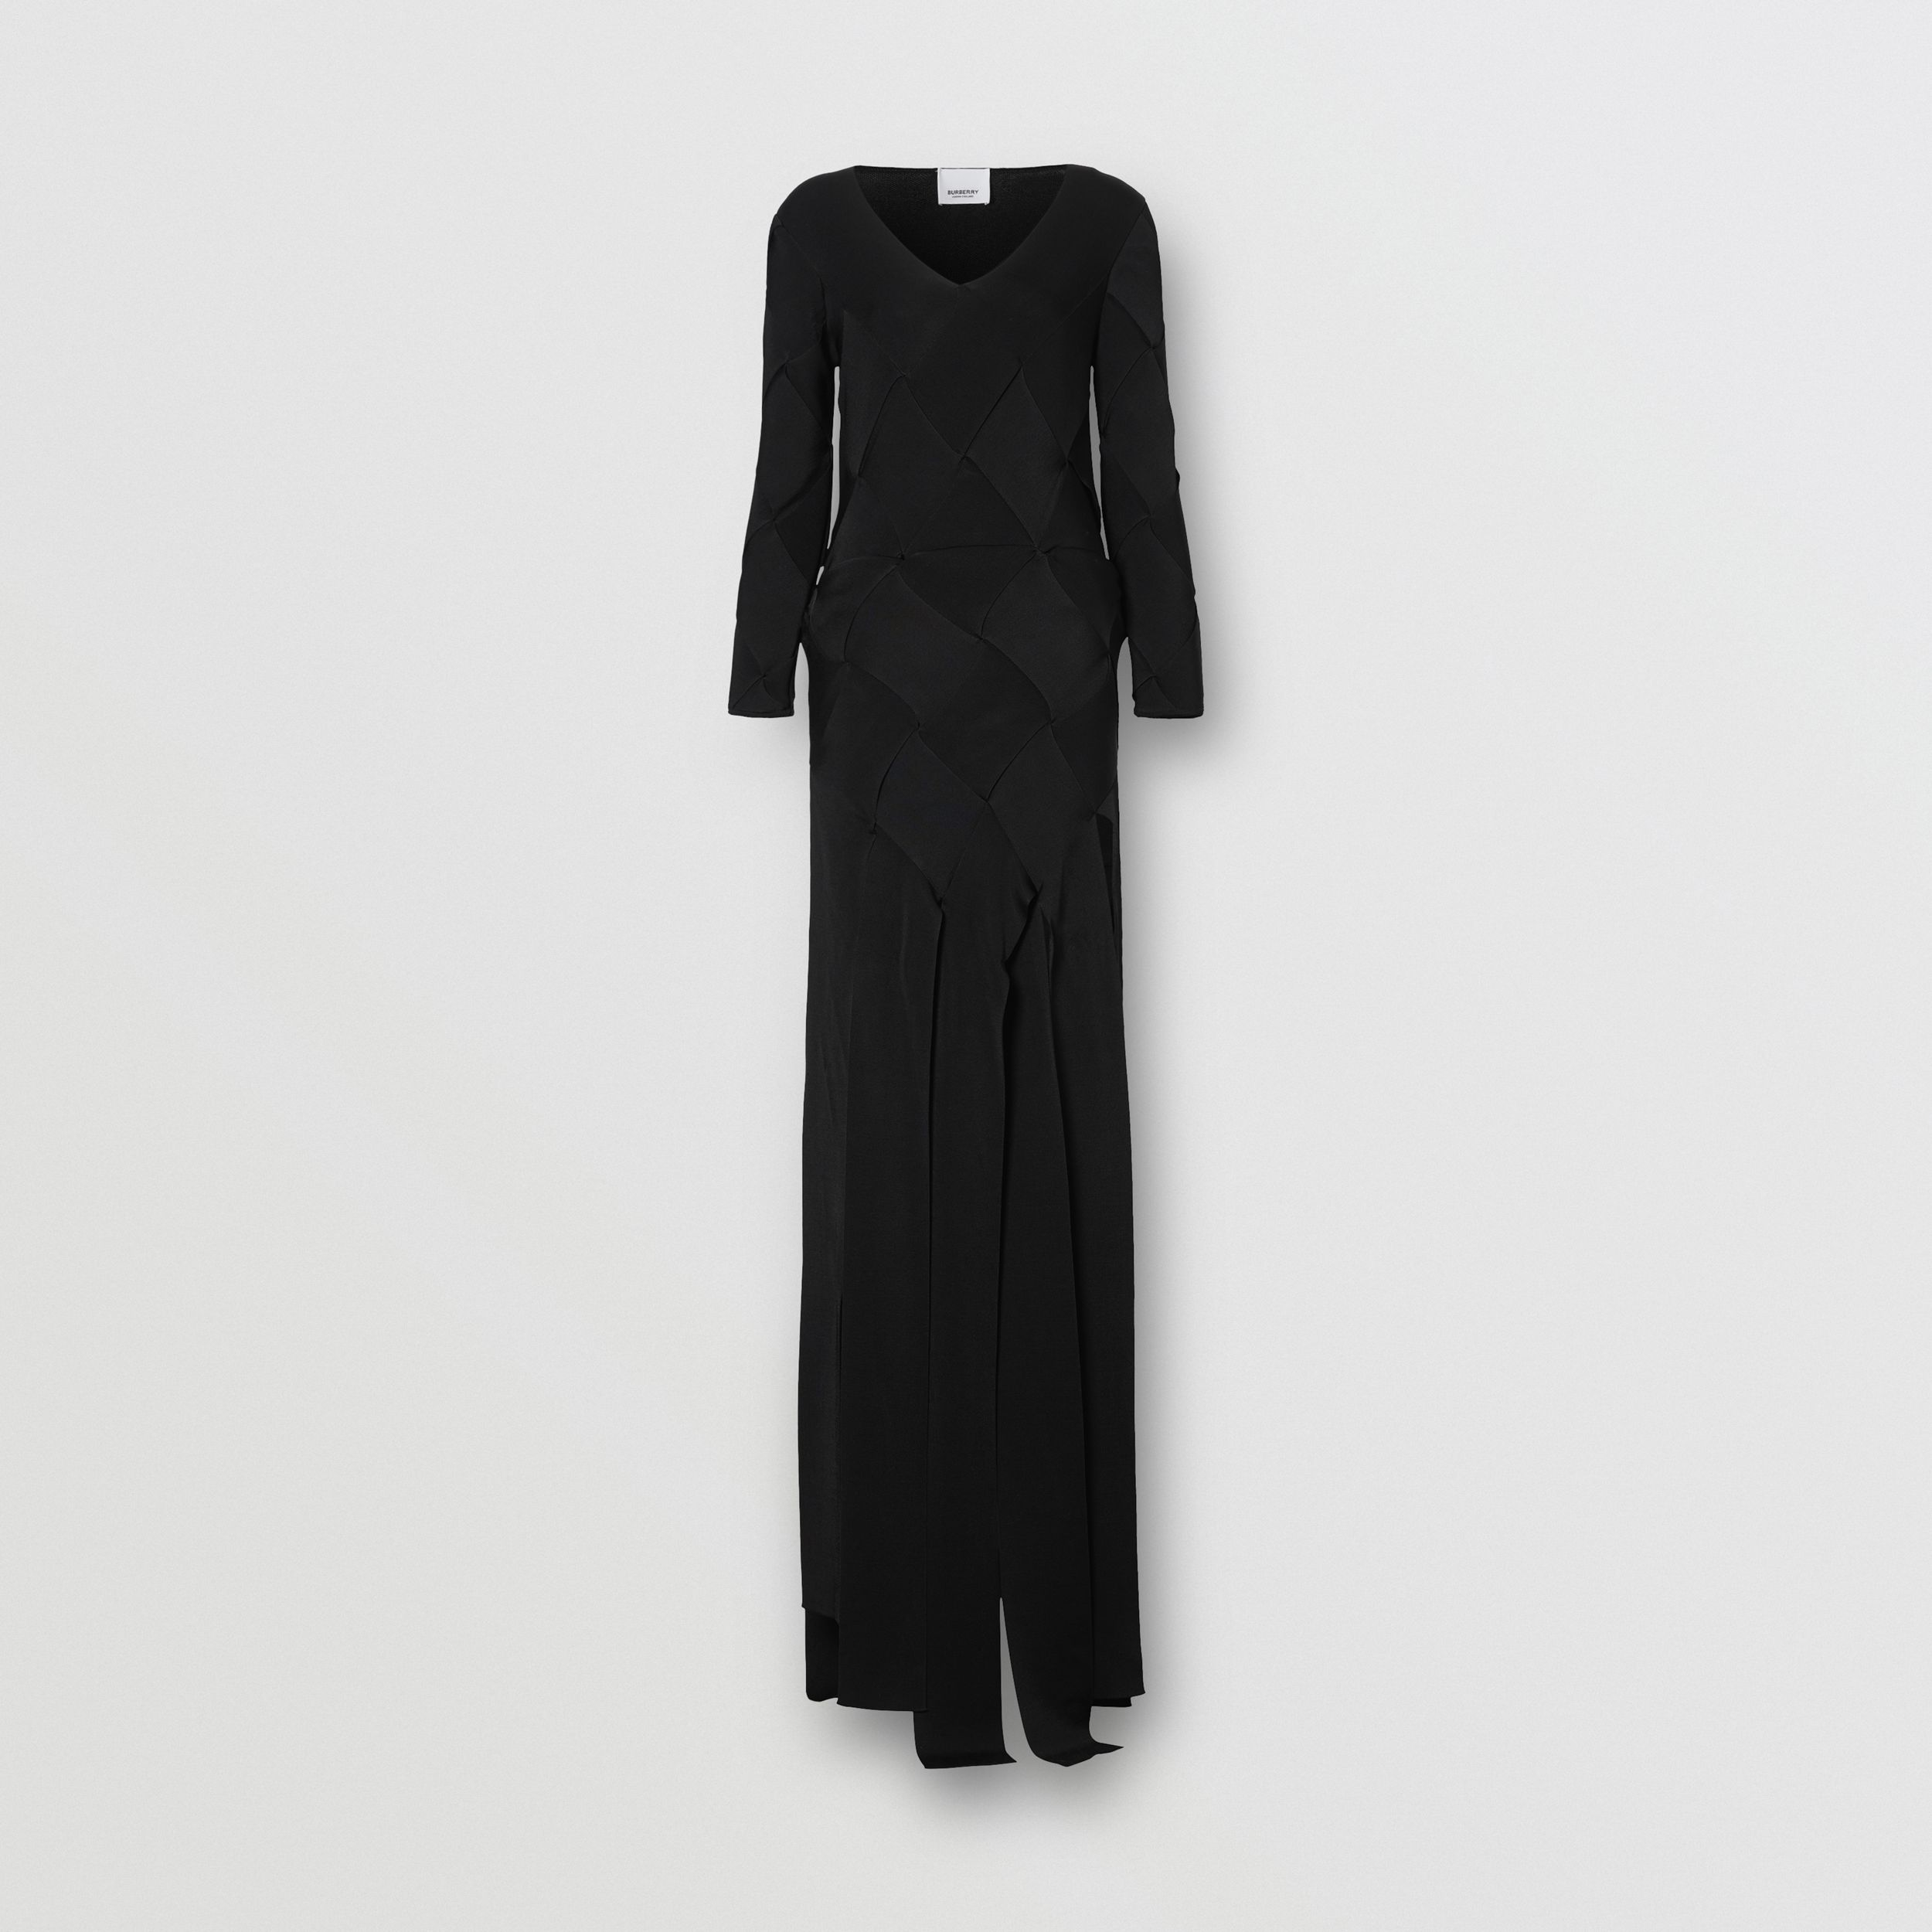 Long-sleeve Panelled Knit Gown in Black - Women | Burberry - 4